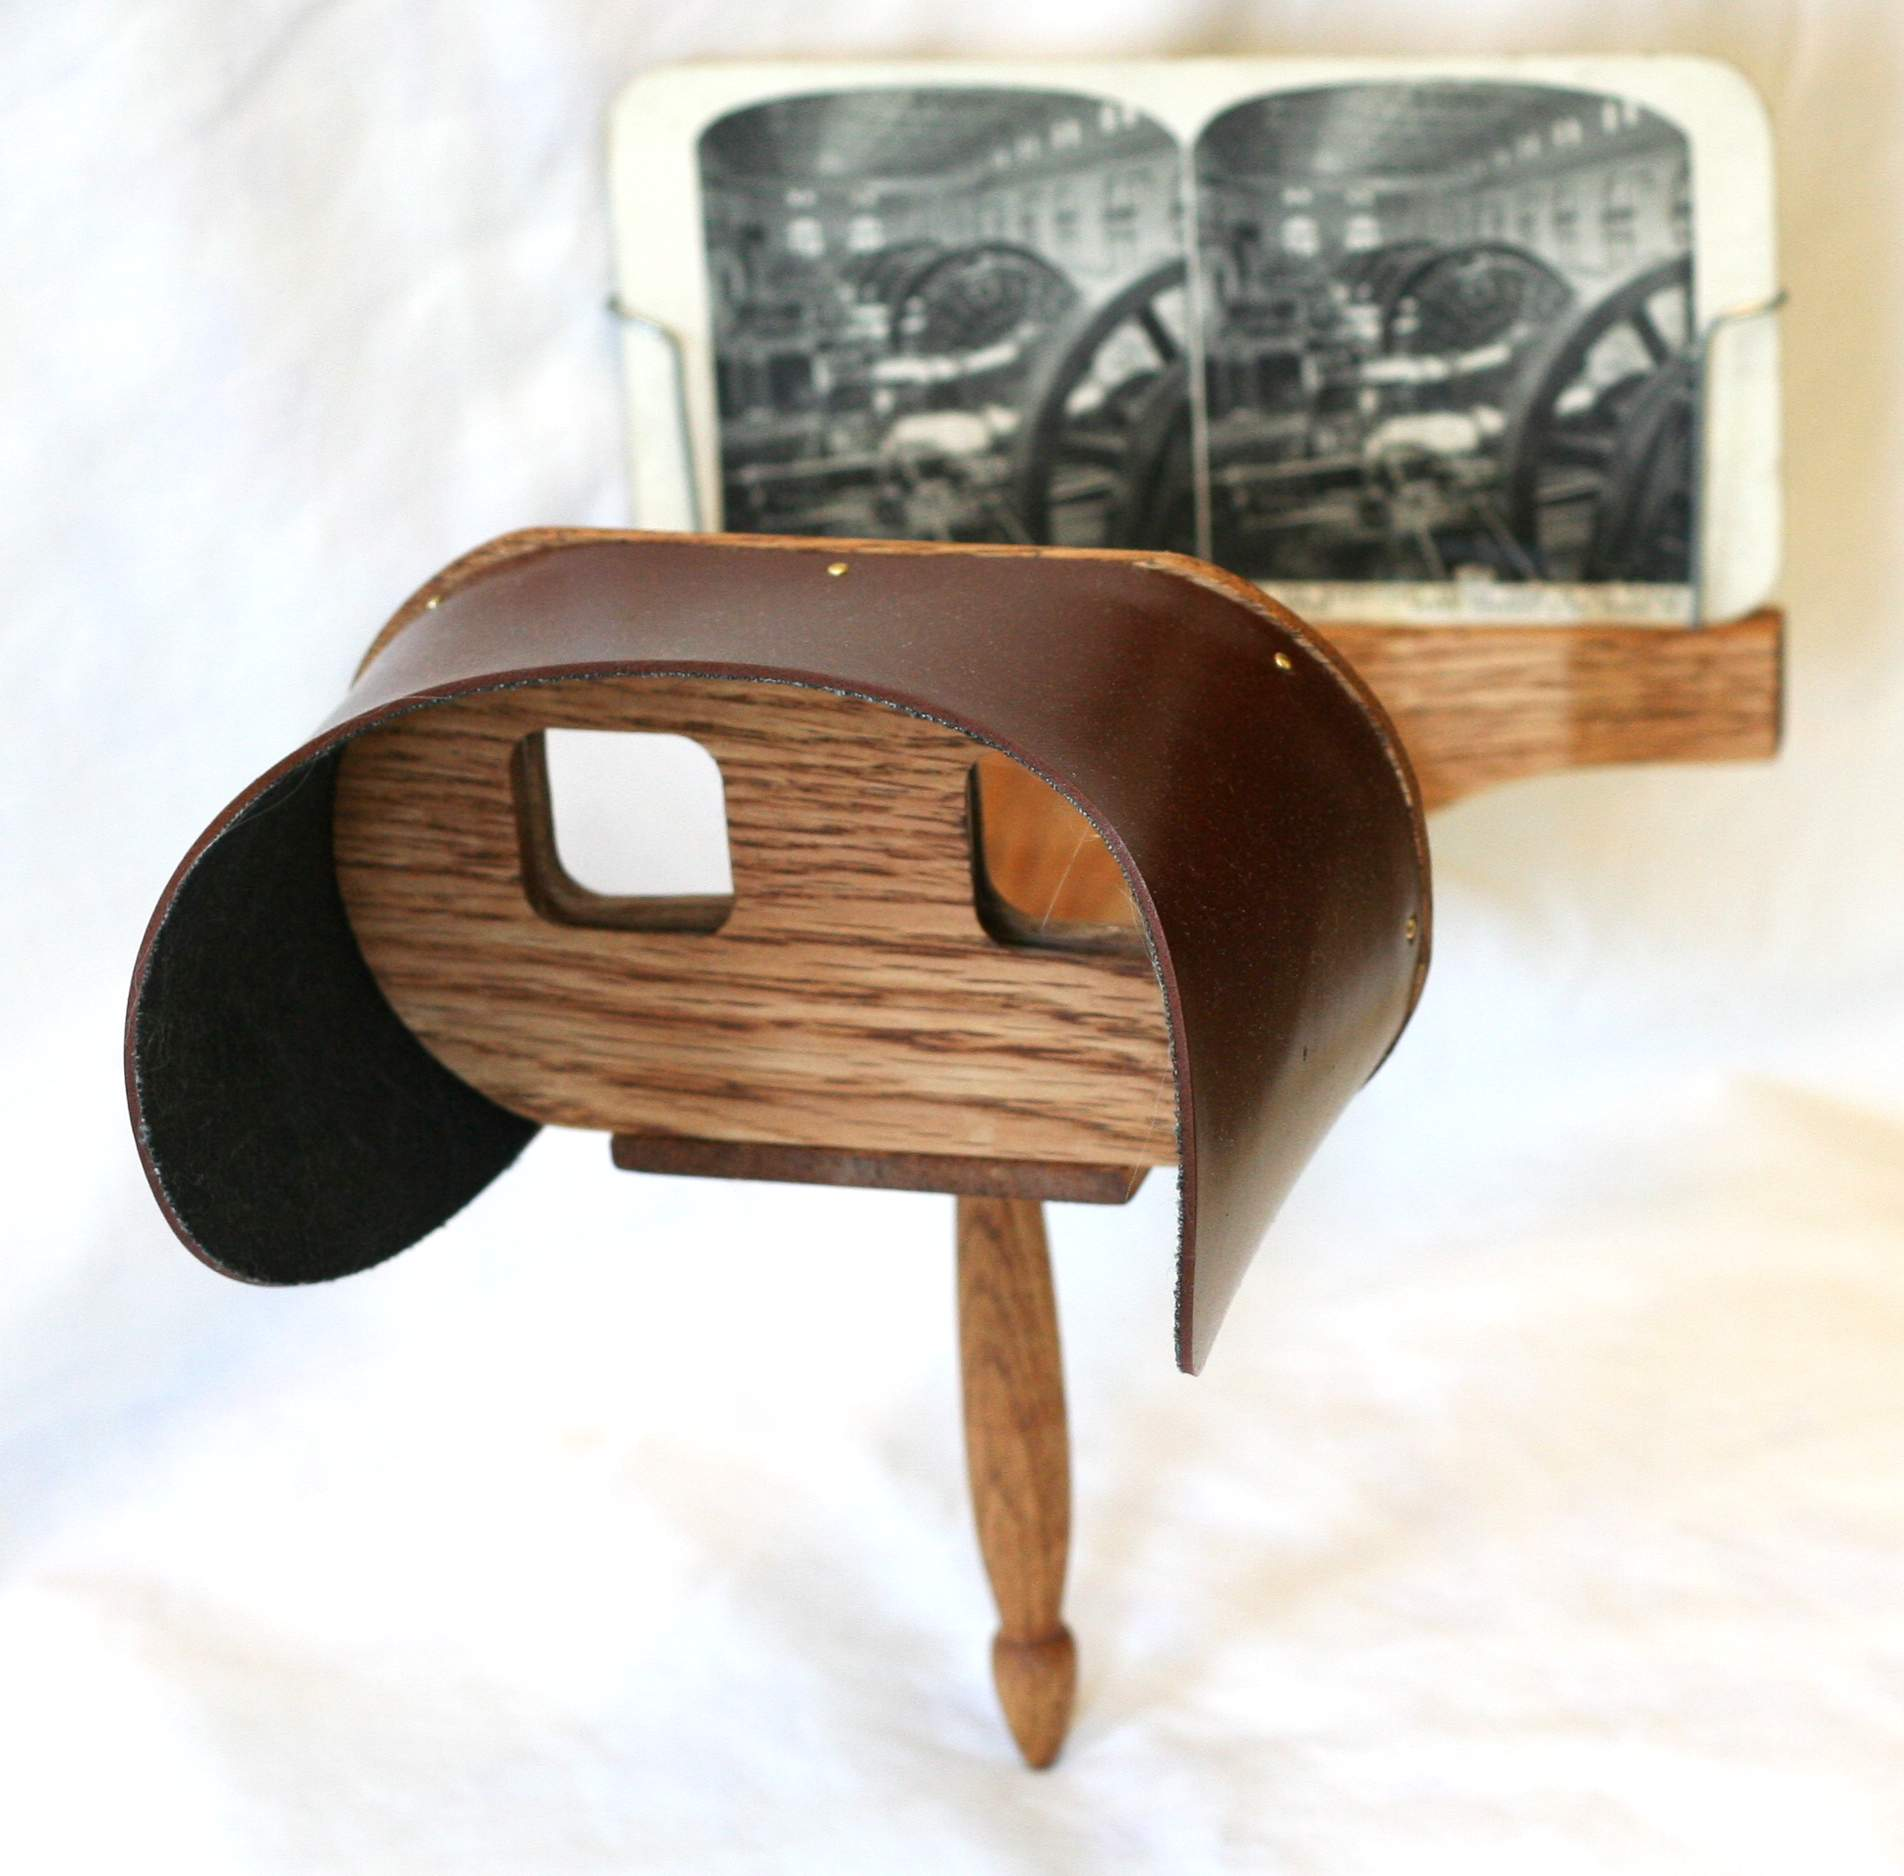 stereoscope, credit: public domain